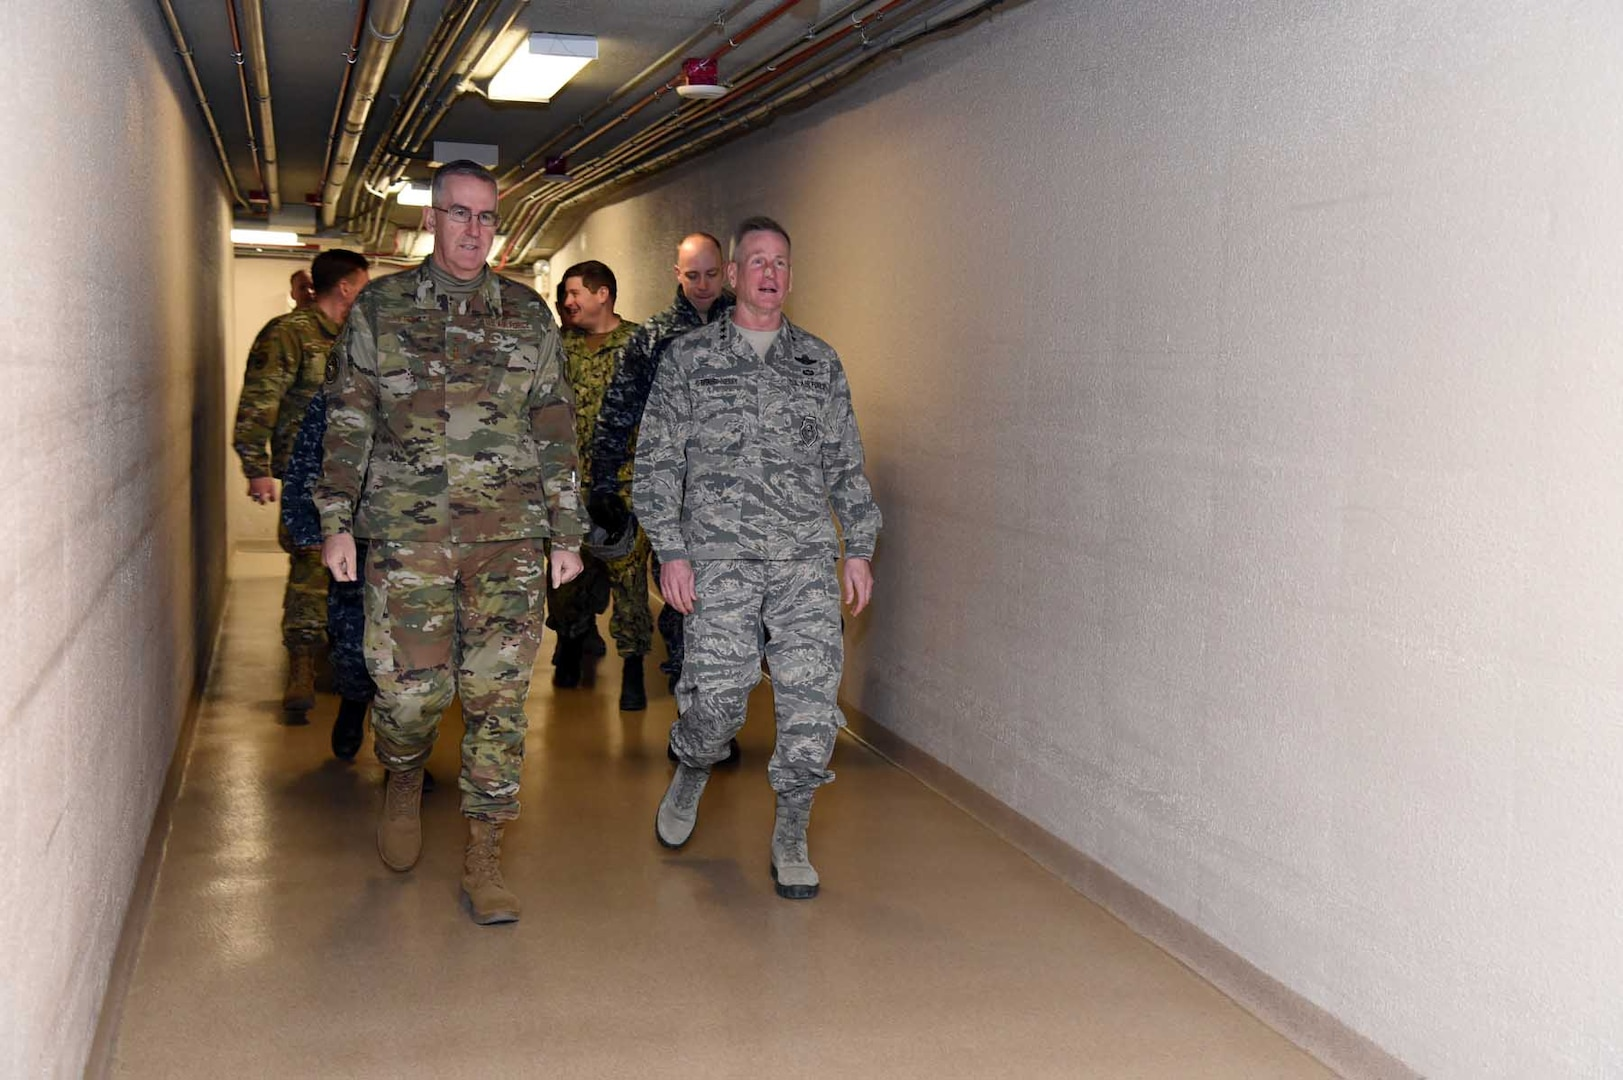 U.S. Air Force Gen. John Hyten, commander of U.S. Strategic Command (USSTRATCOM), and U.S. Air Force Gen. Terrence O'Shaughnessy, commander of North American Aerospace Defense Command (NORAD) and United States Northern Command (USNORTHCOM), descend to the USSTRATCOM Global Operations Center (GOC), Offutt Air Force Base, Neb., Jan. 30, 2019. During his visit, O'Shaughnessy toured the command's GOC, battle deck and new command and control facility. He also participated in discussions with Hyten and other senior leaders on the continuing collaboration between USSTRATCOM, NORAD and USNORTHCOM. USSTRATCOM has global responsibilities assigned through the Unified Command Plan that include strategic deterrence, nuclear operations, space operations, joint electromagnetic spectrum operations, global strike, missile defense, and analysis and targeting.